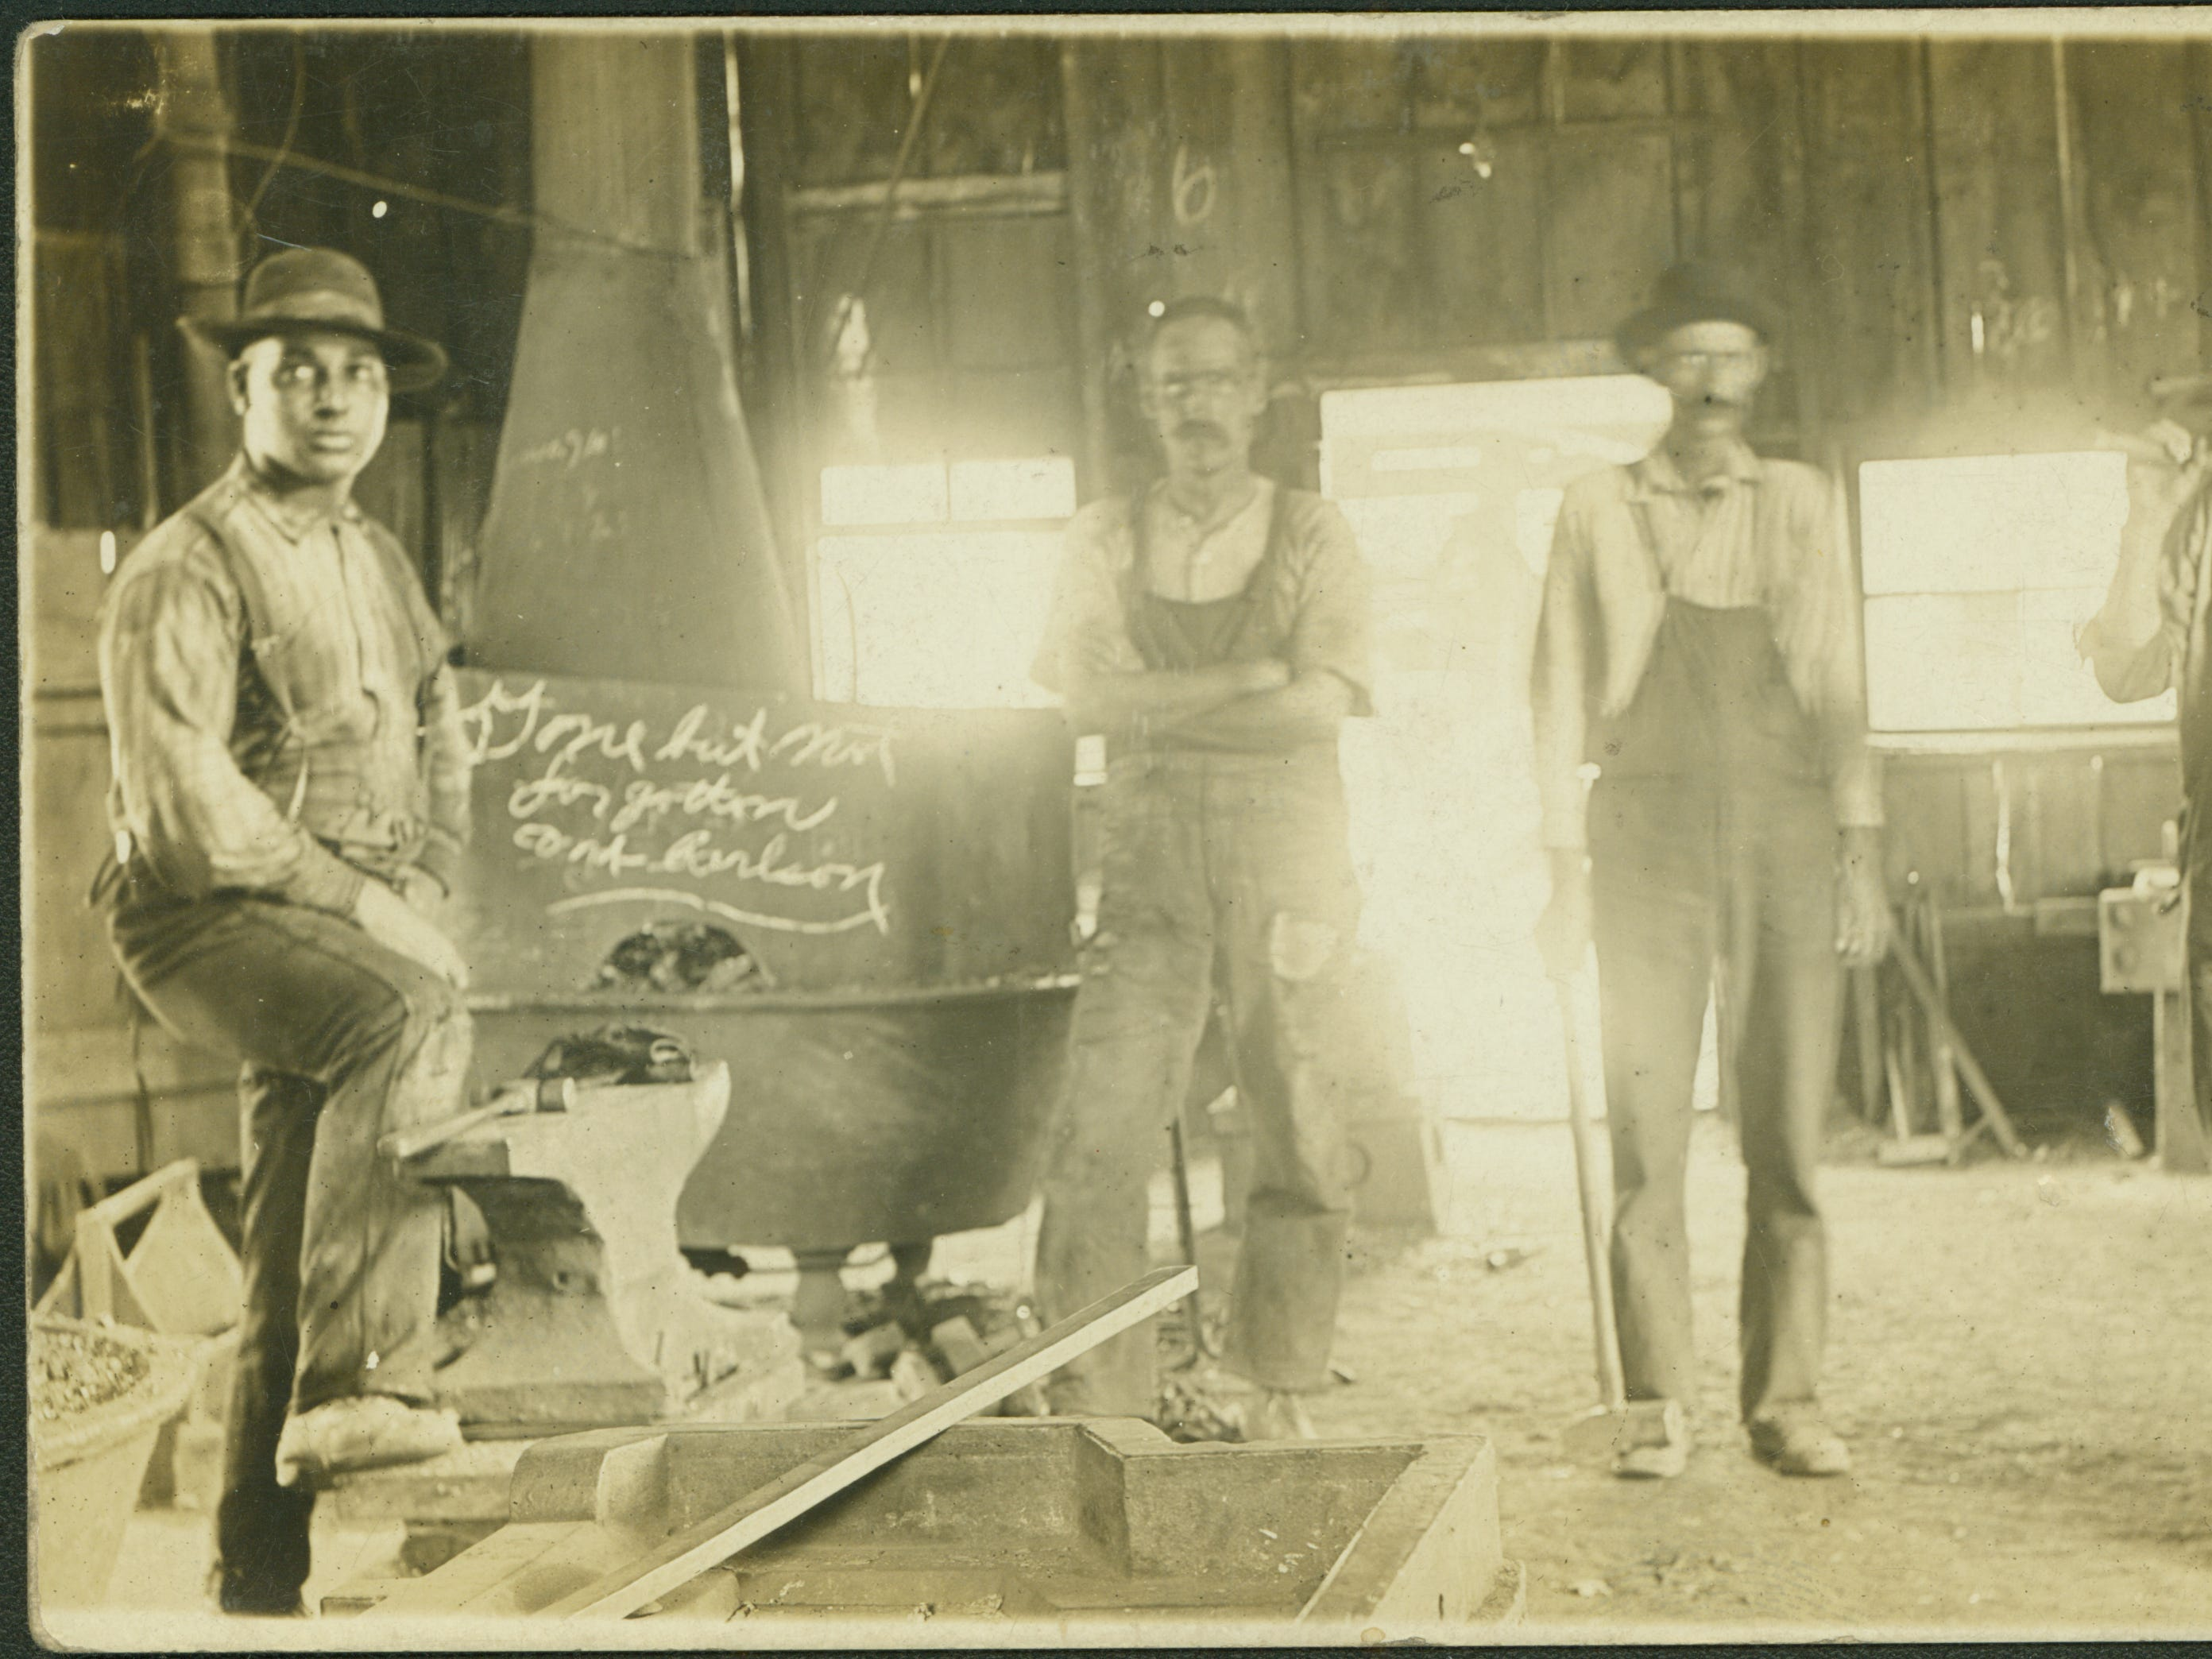 Employees at a blacksmith shop in Buxton, Iowa, about 1910. The town was known as a place where black migrants from the South worked side-by-side with white immigrants from Europe.